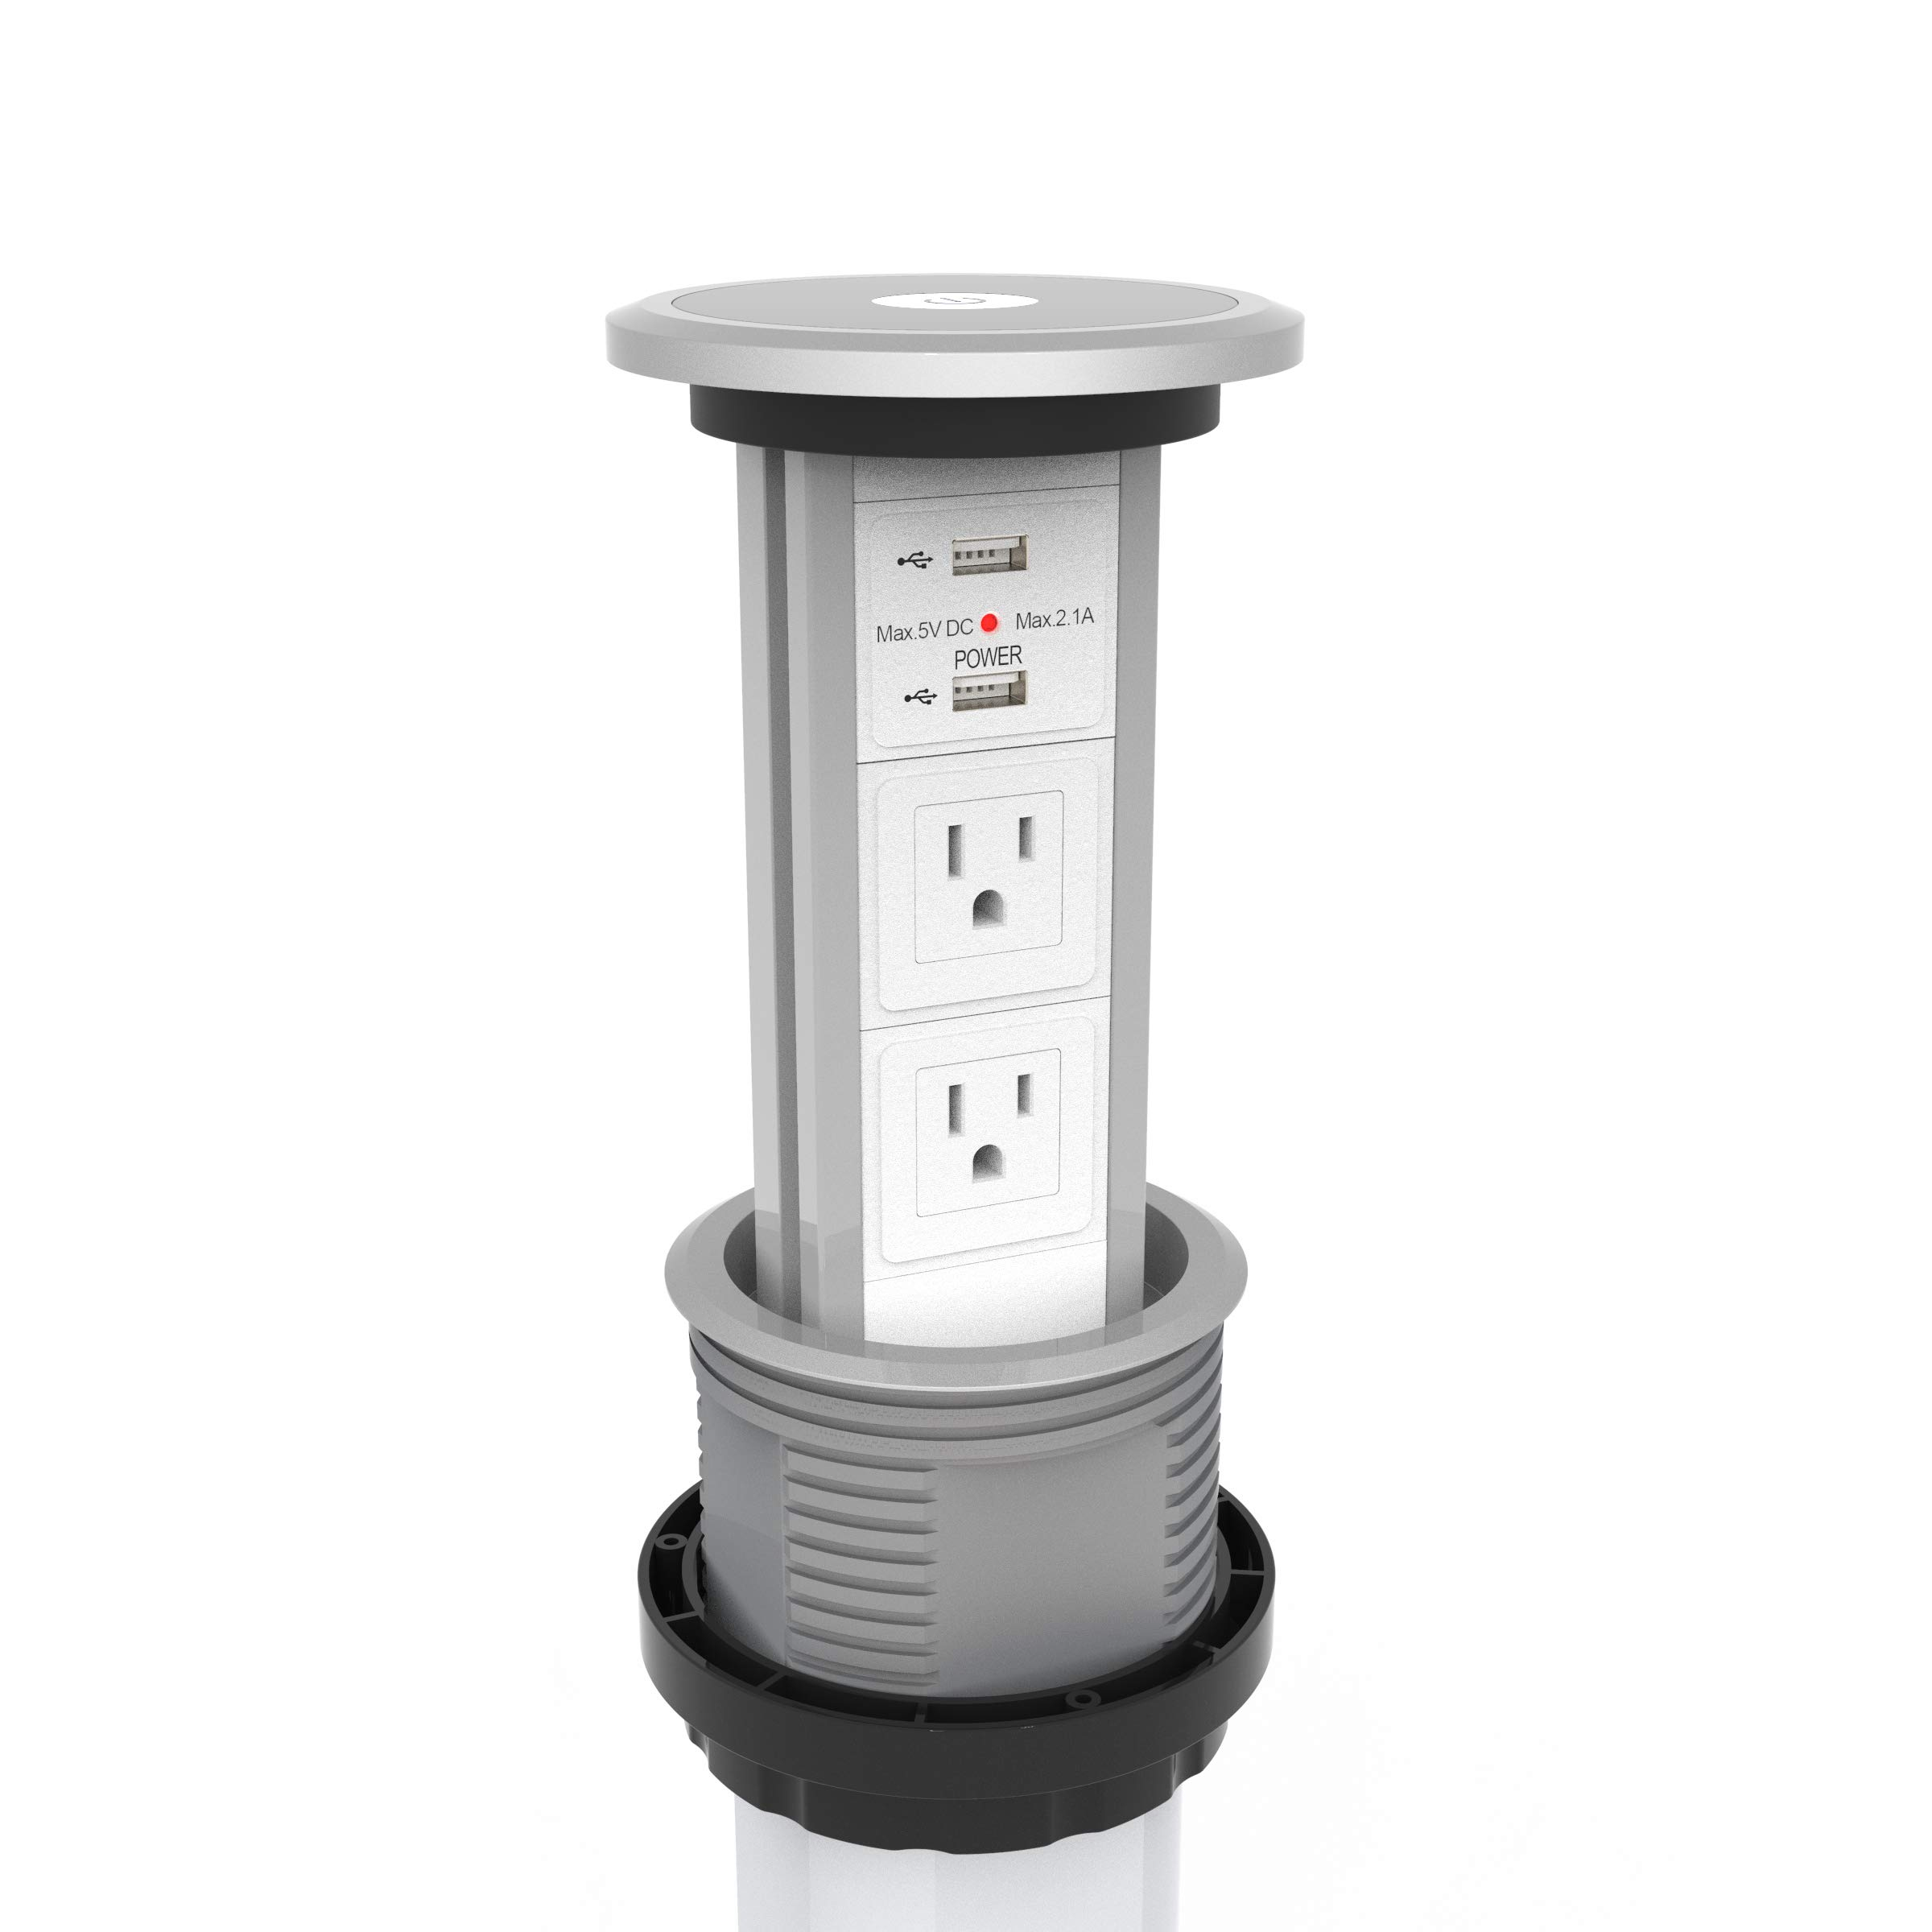 V3 - US Motorised Pop Up Power Point Socket Outlet w/ 2 GPO + 2 USB Sockets (white face)